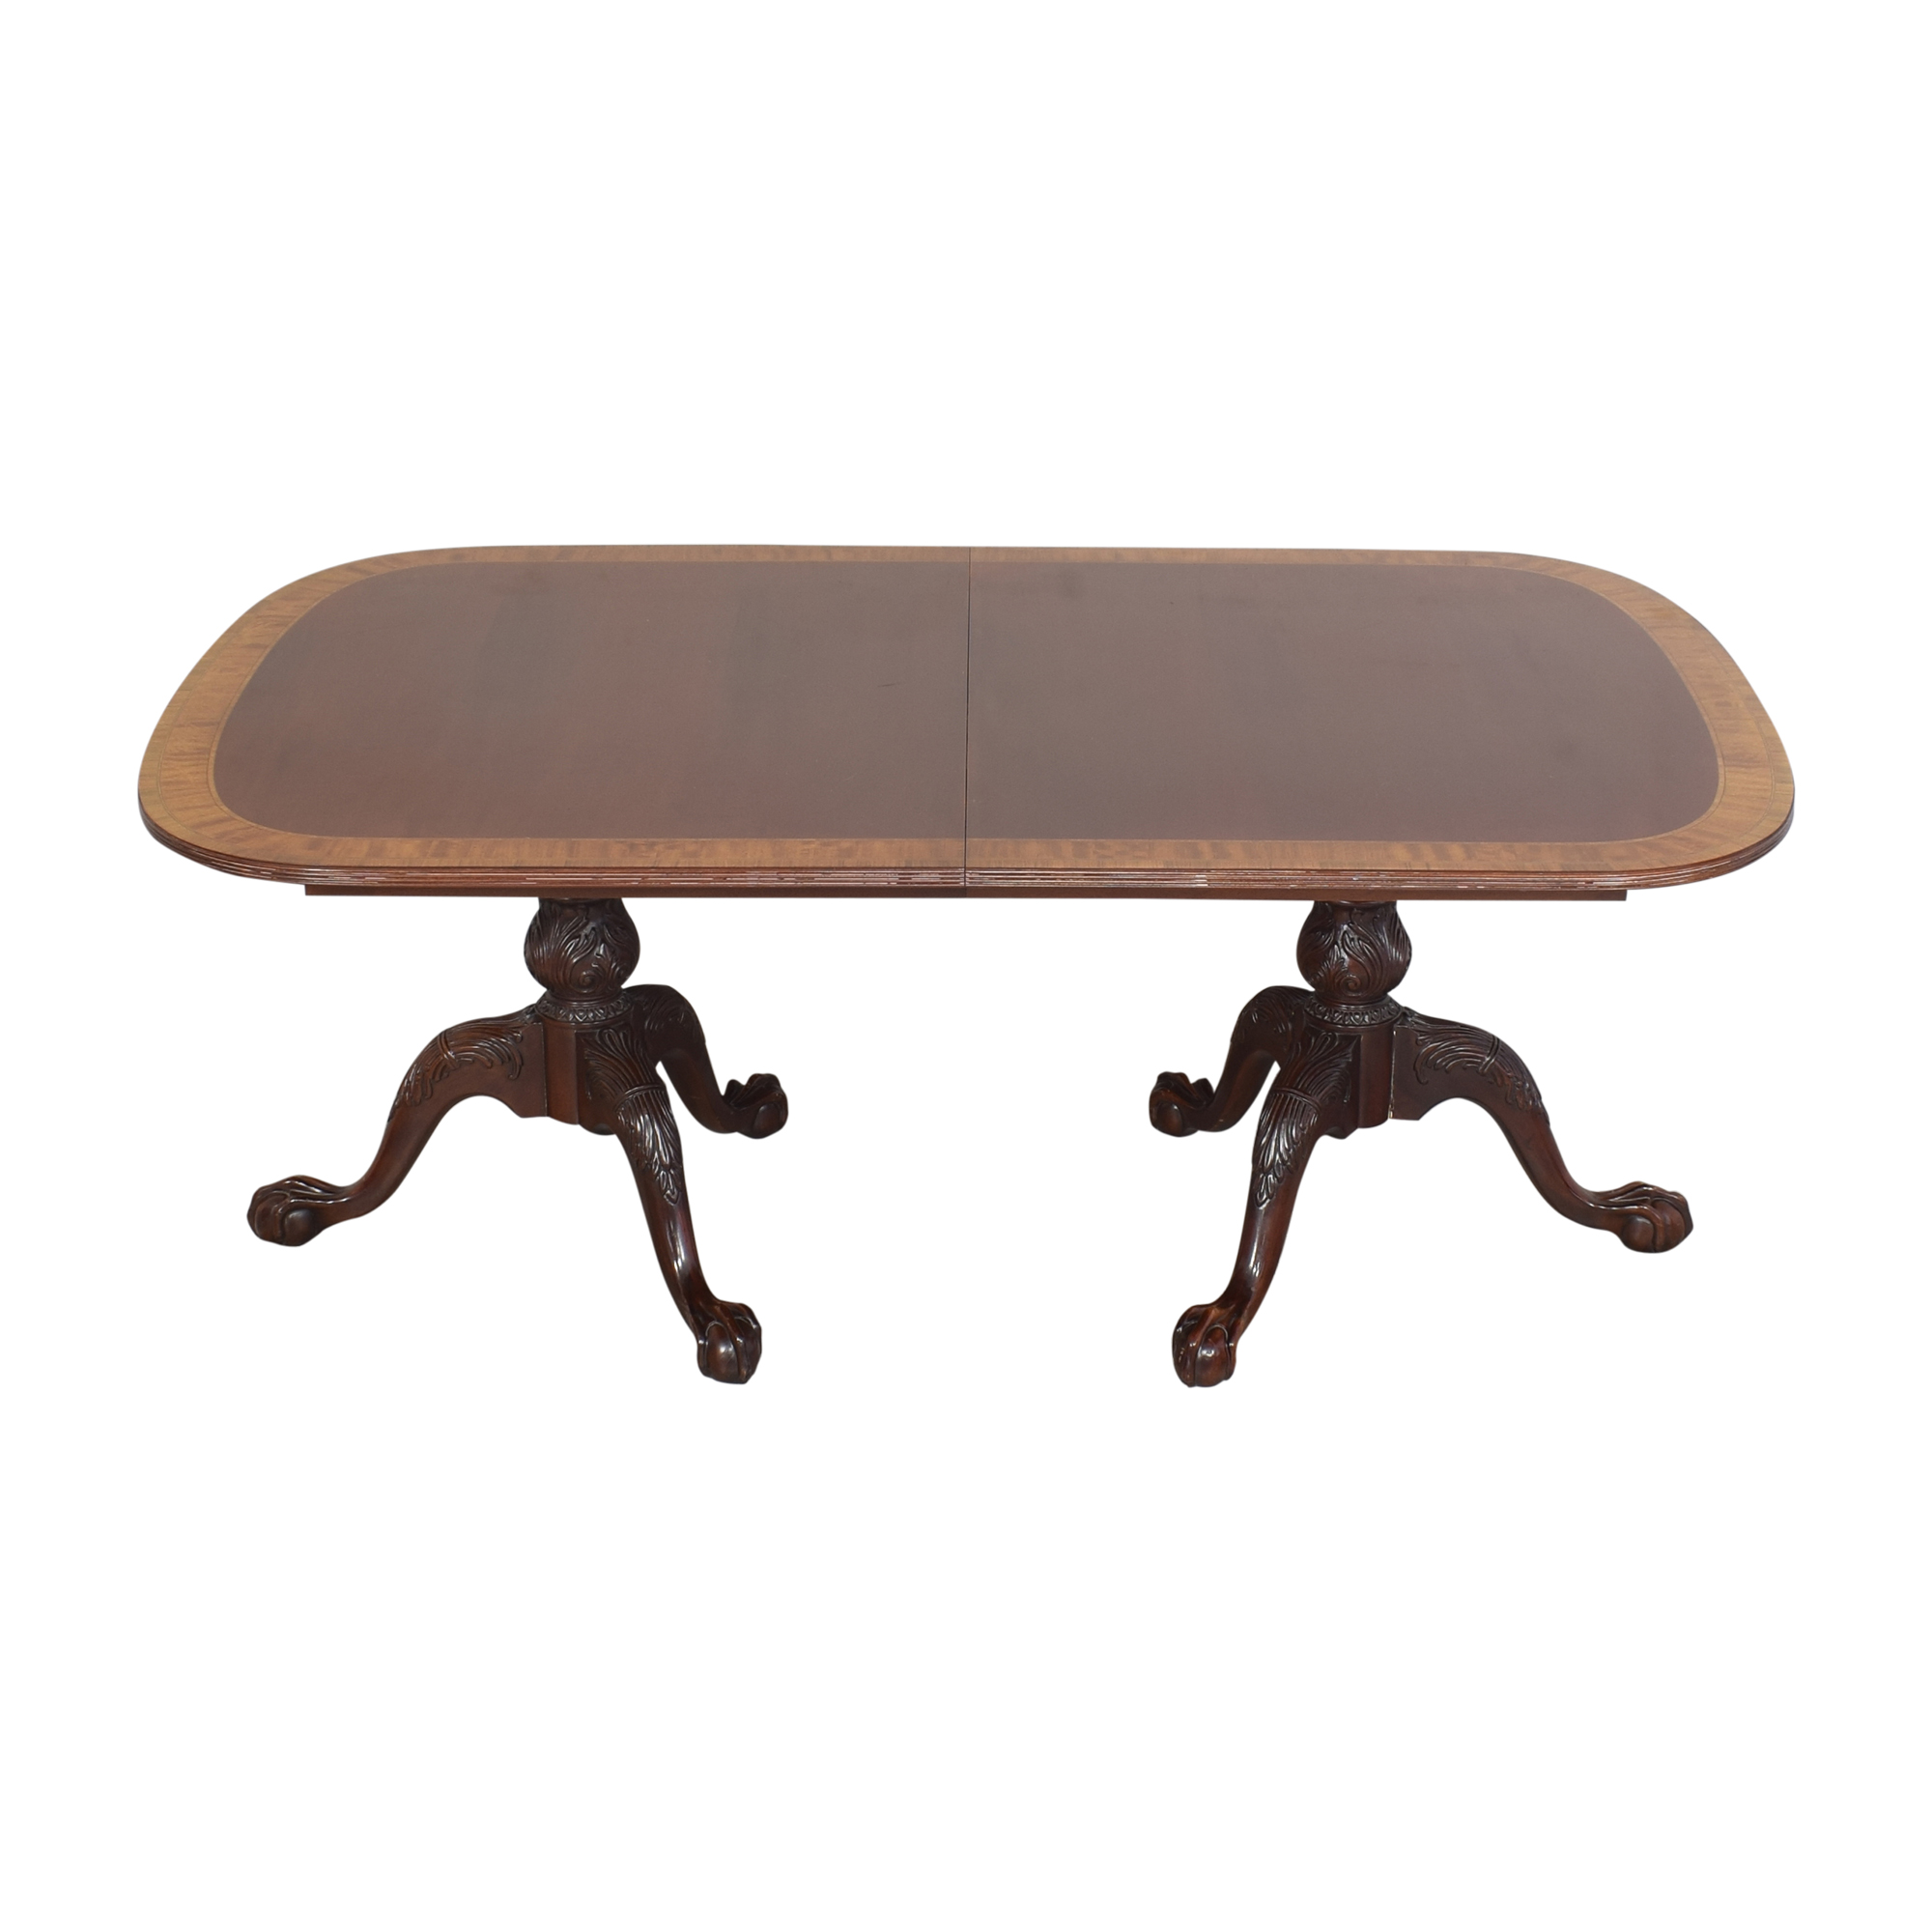 Councill Councill Double Pedestal Dining Table Brown